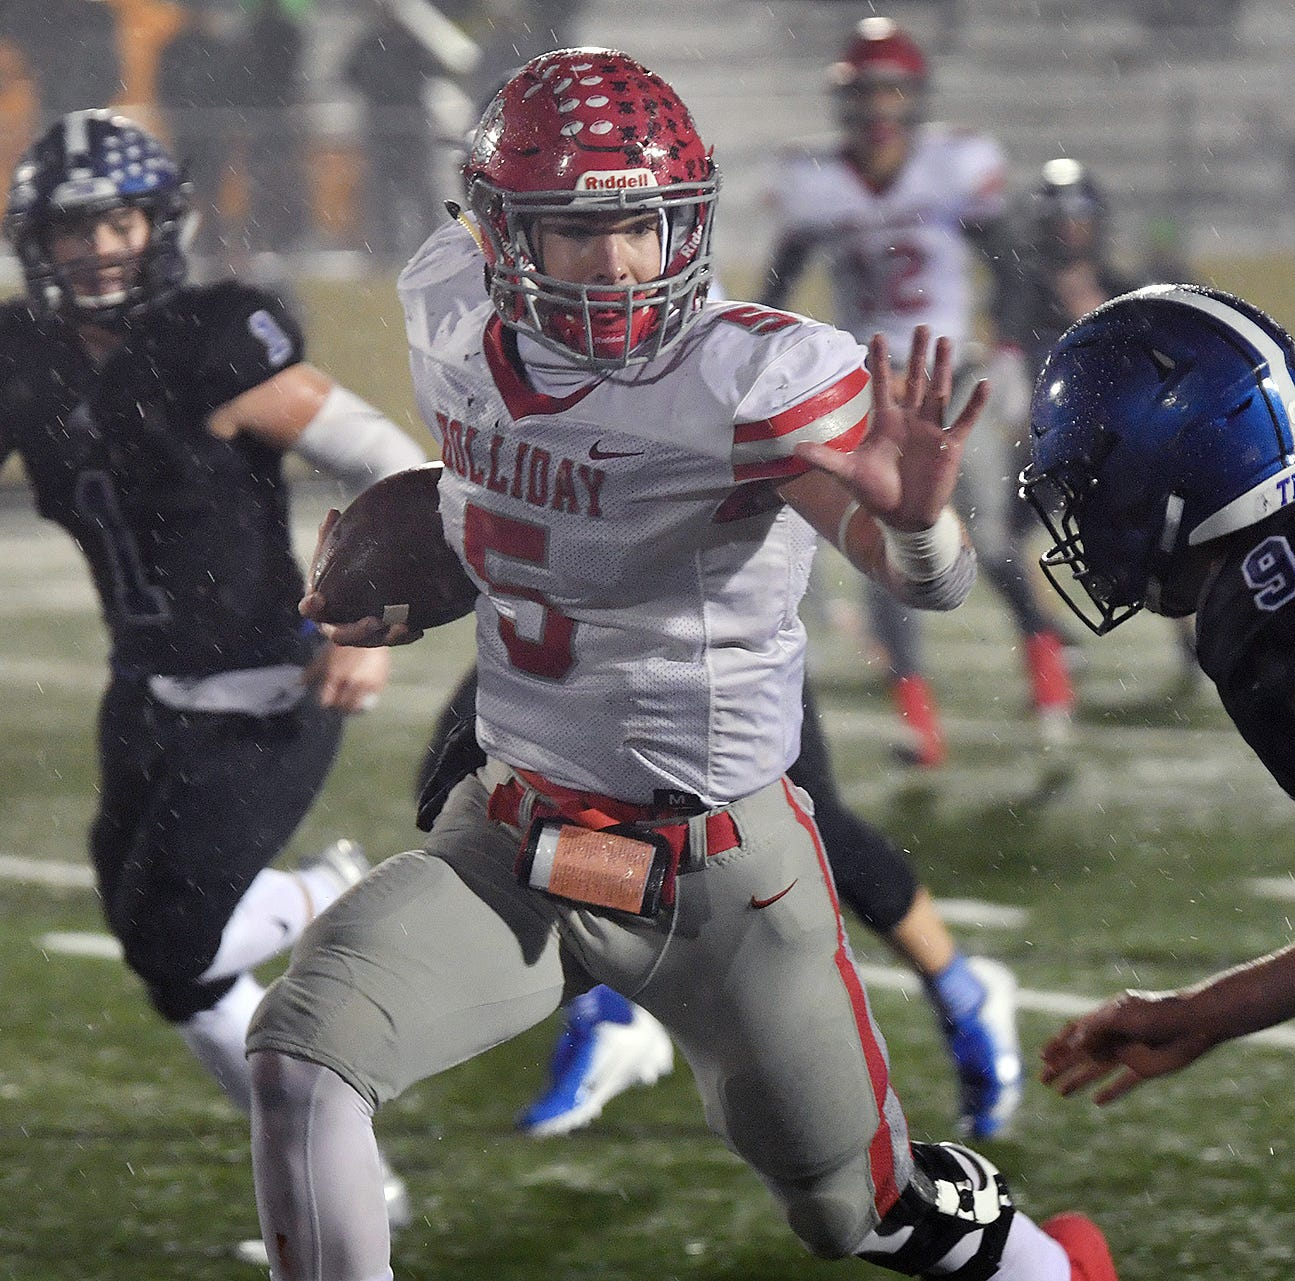 Gunter's defense dominates to eliminate Holliday from the playoffs